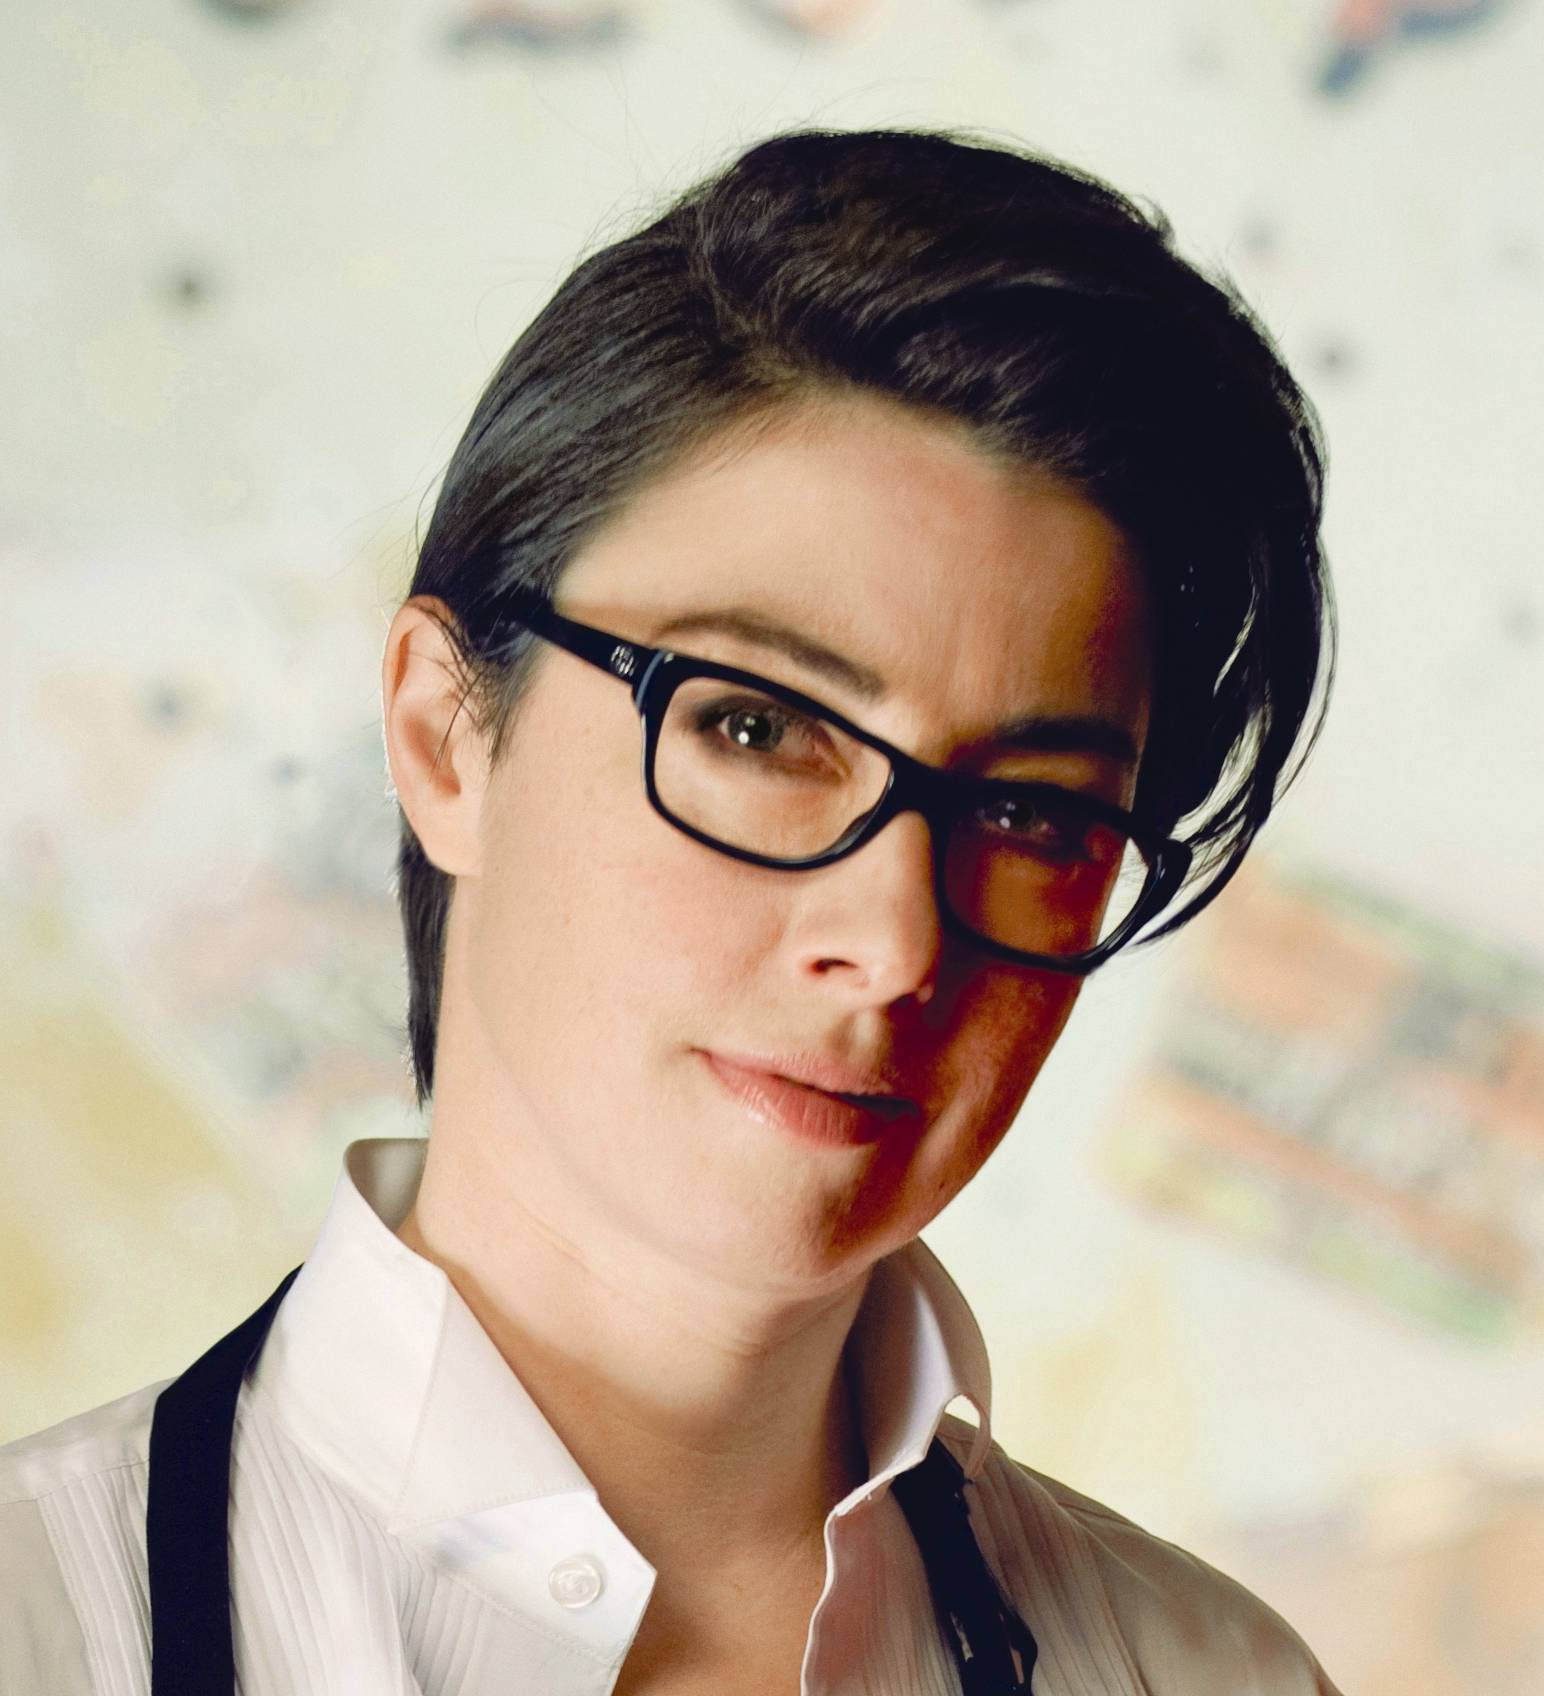 Pictures Sue Perkins naked (19 photos), Topless, Sideboobs, Boobs, cameltoe 2019